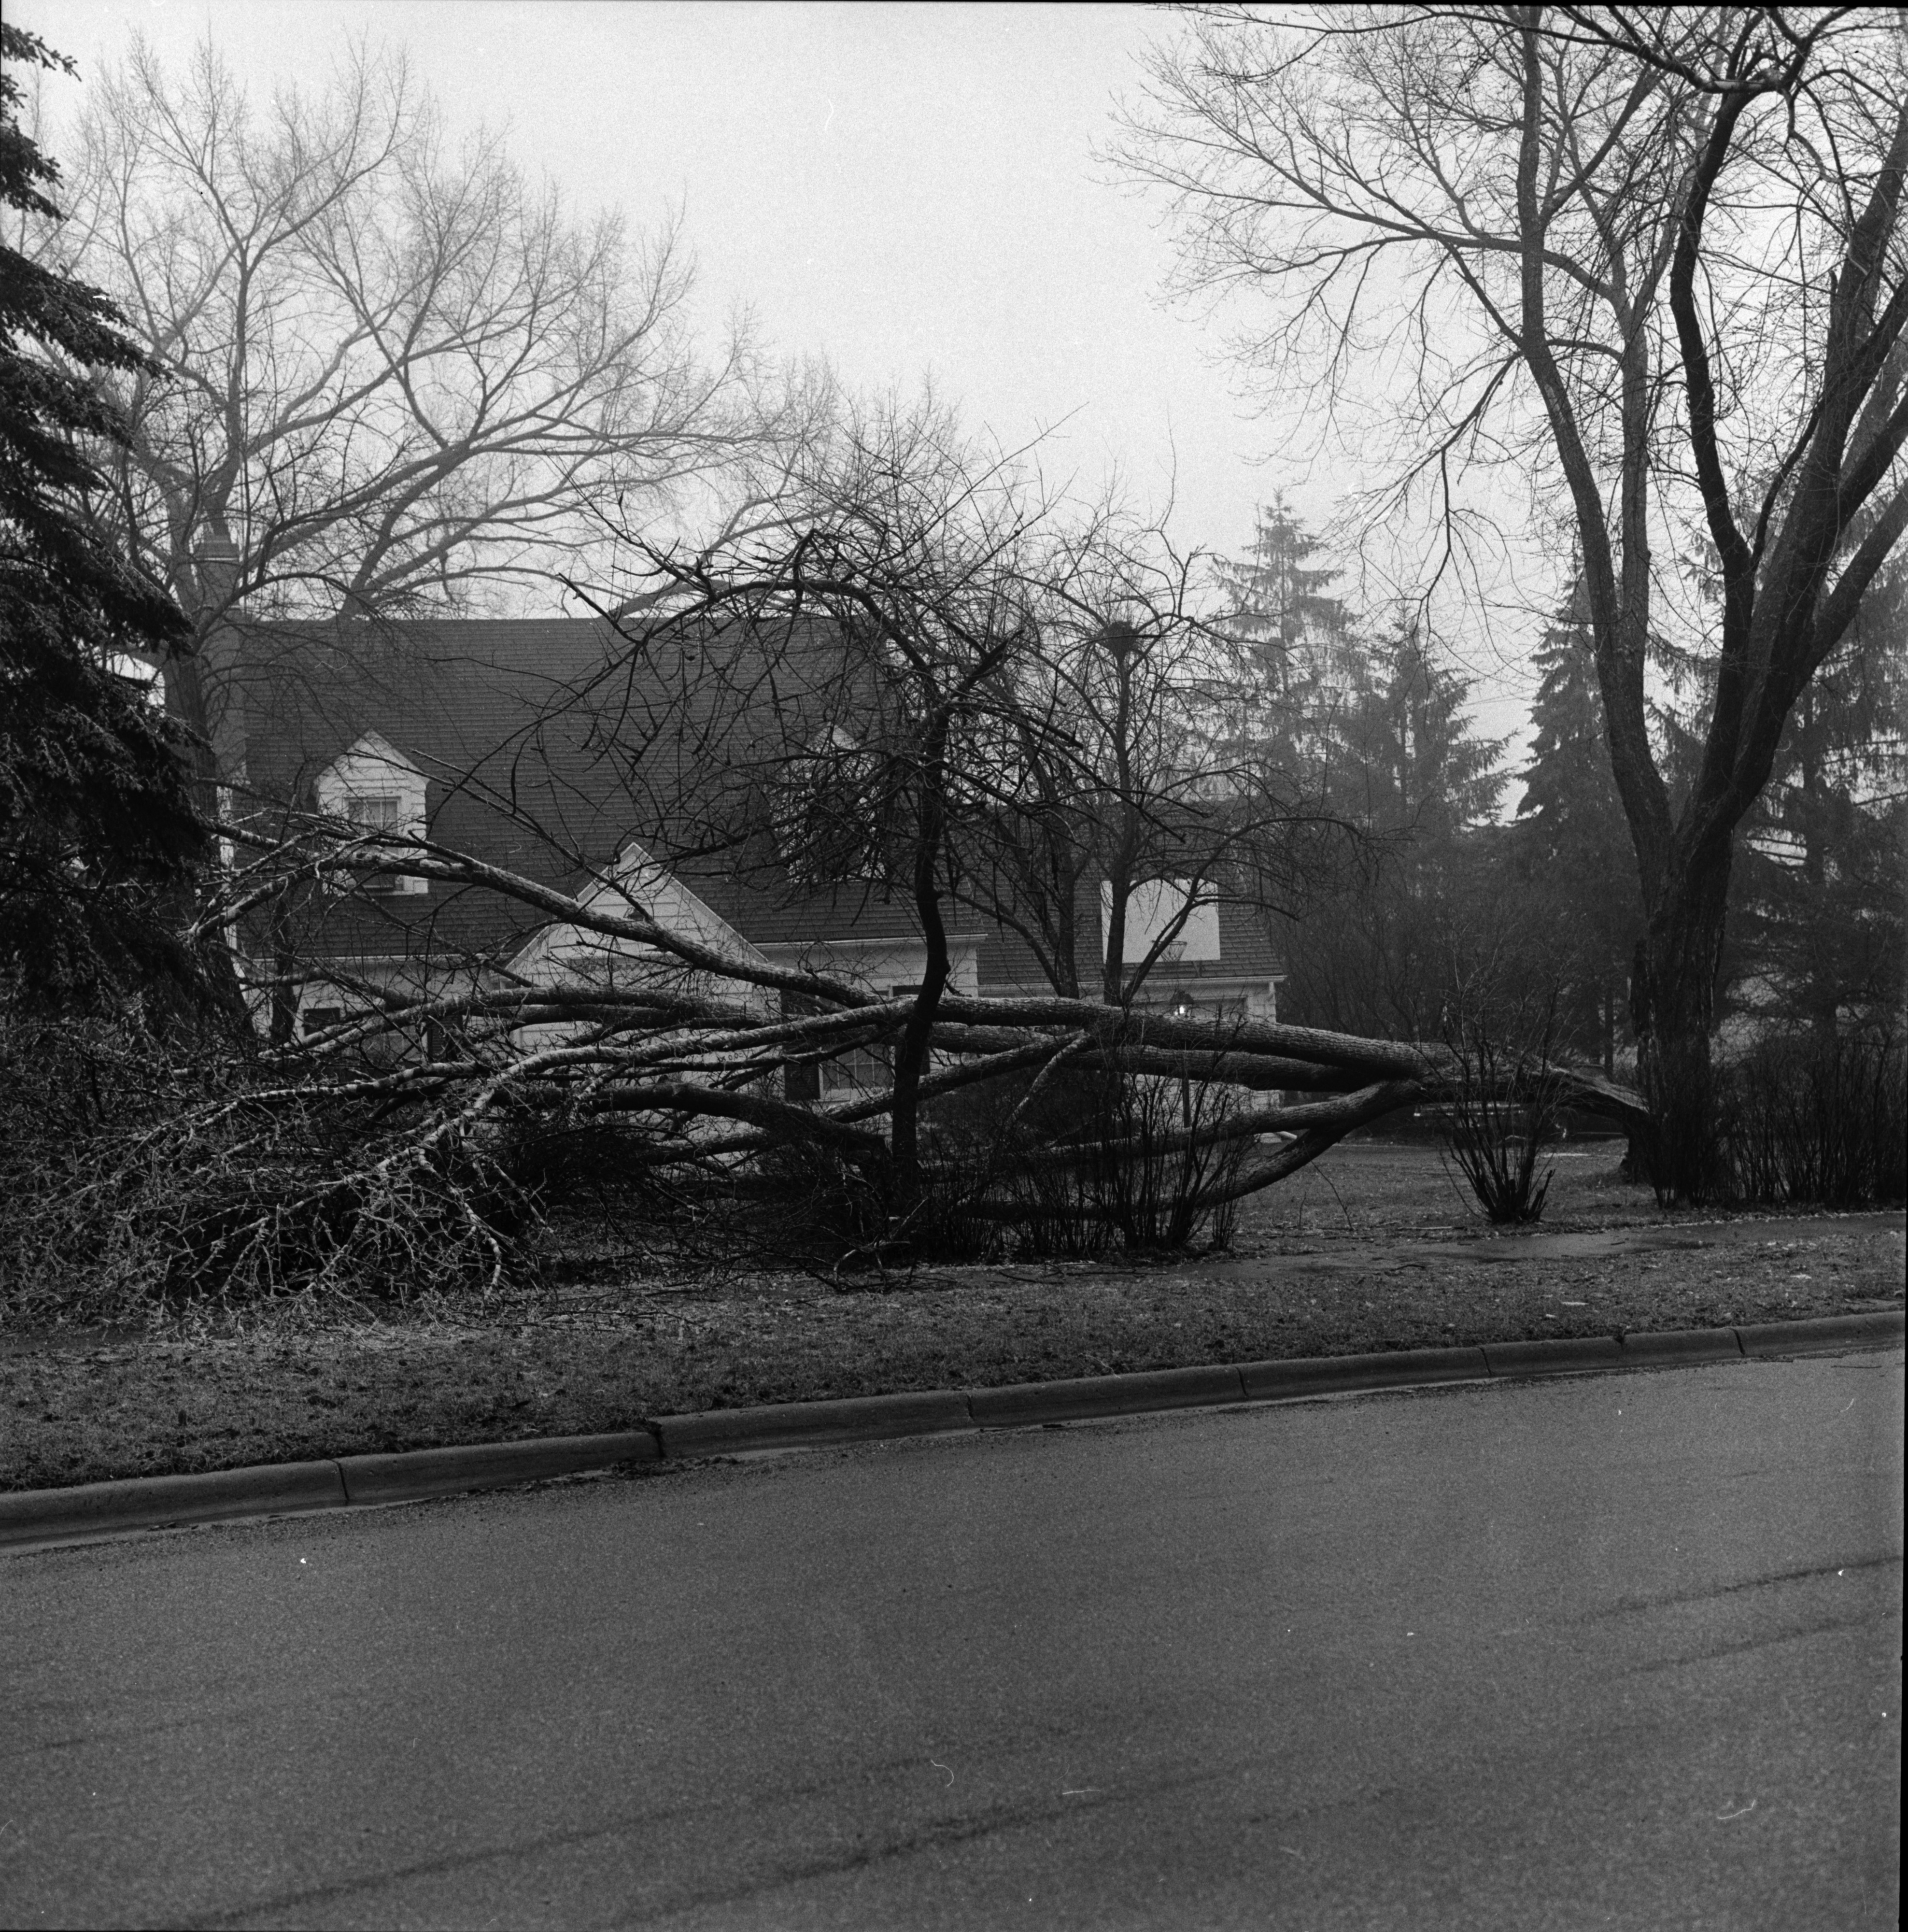 Tree Down on Brockman Blvd., March 1972 image